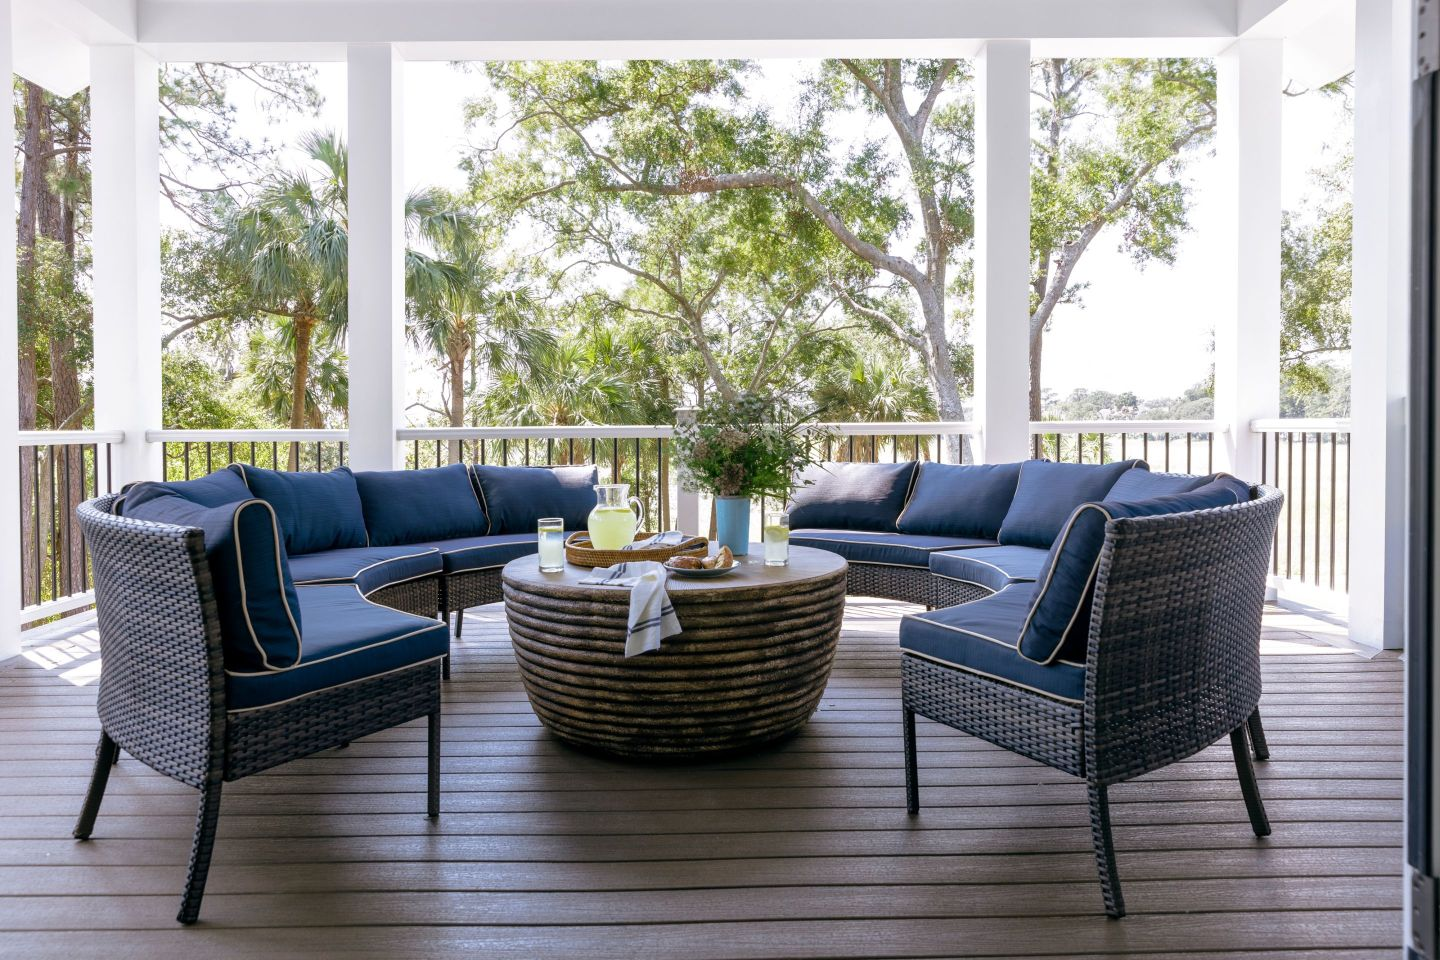 HGTV-Dream-Home-2020-Multi-Purpose-Room-Deck Lowcountry Vacation Home Style in Hilton Head with HGTV Dream Home 2020